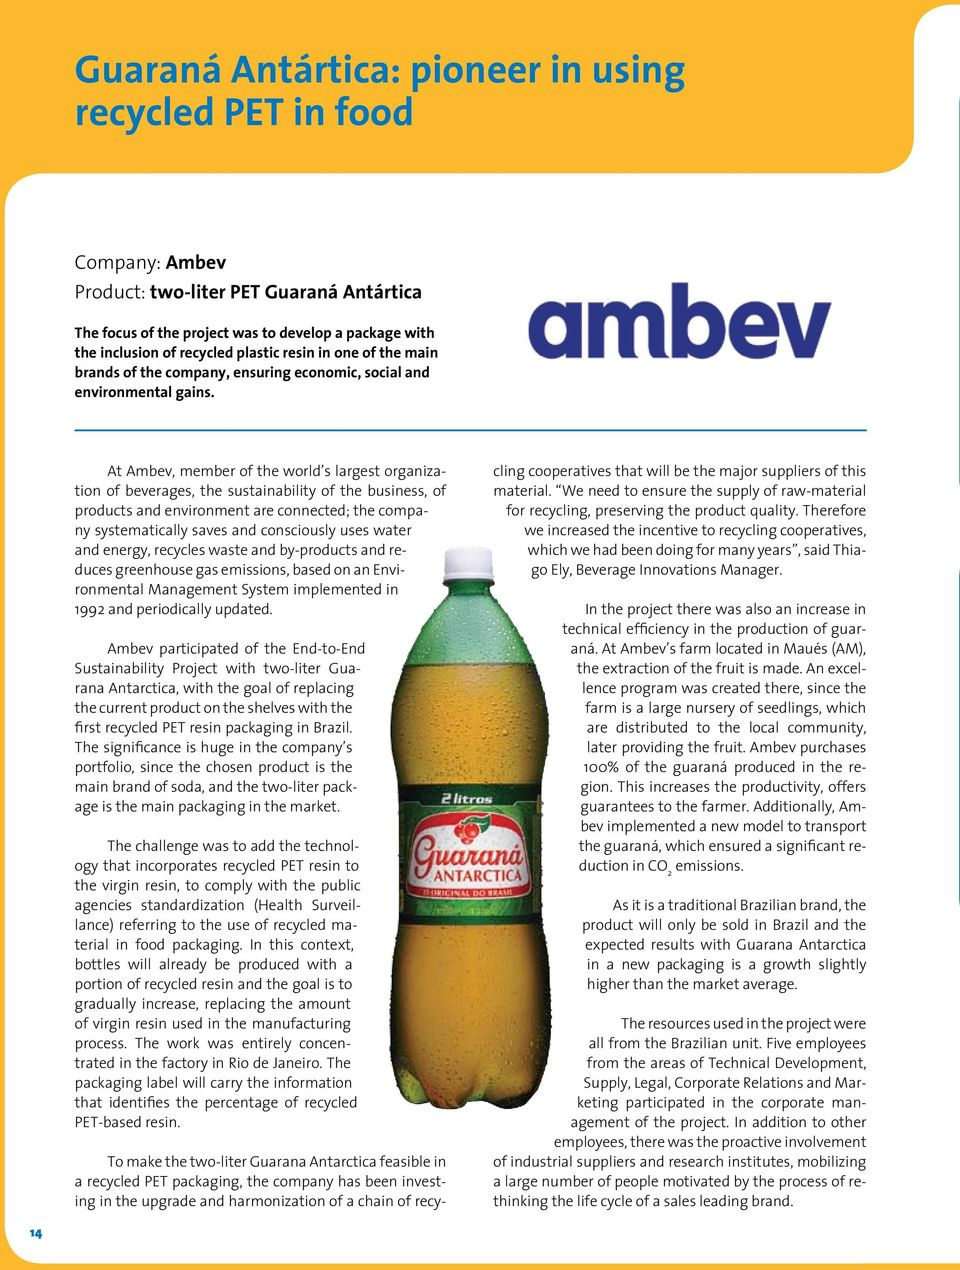 At Ambev, member of the world s largest organization of beverages, the sustainability of the business, of products and environment are connected; the company systematically saves and consciously uses